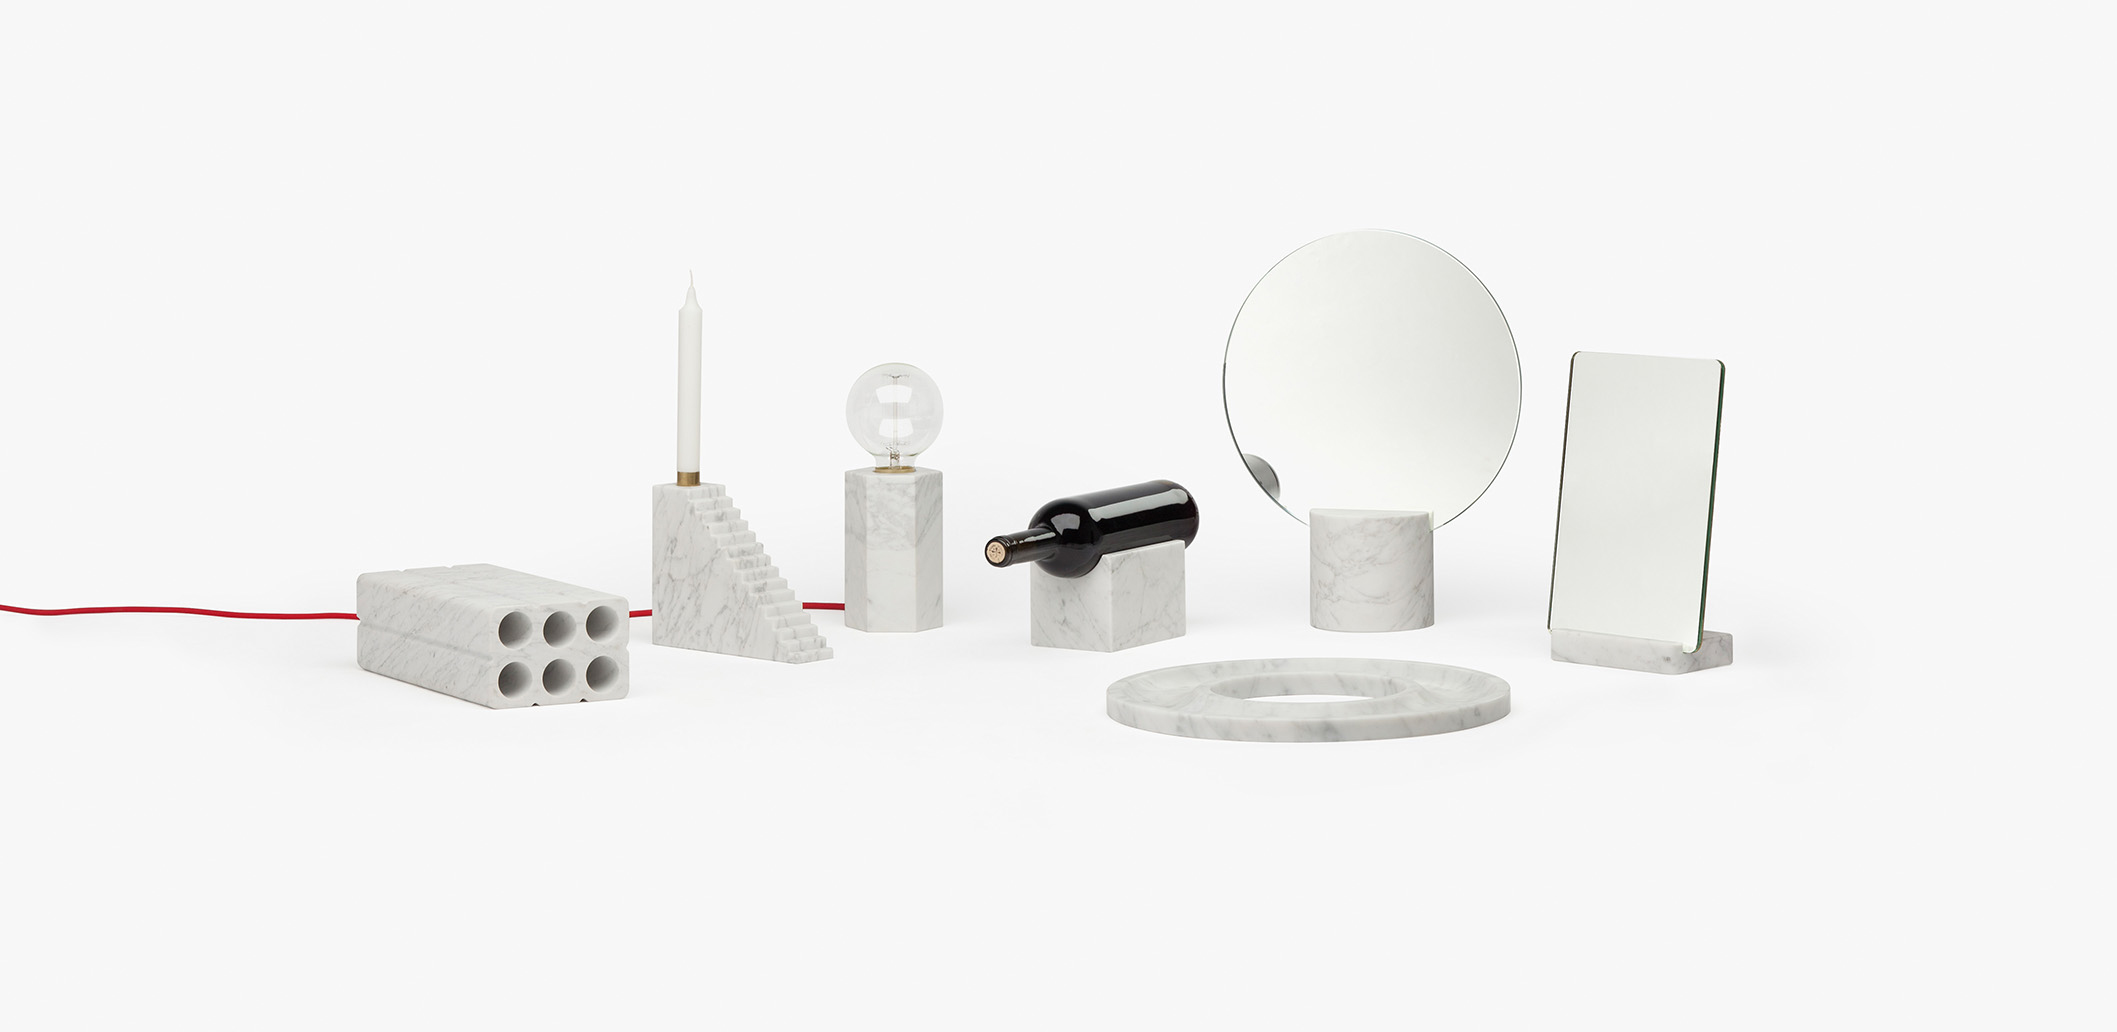 Marblelous collection: Brique limited edition, Stairs, Hex Lamp + Light bulb, Wine Holder, Sun mirror, Mirror, Ring Tray   - Aparentment